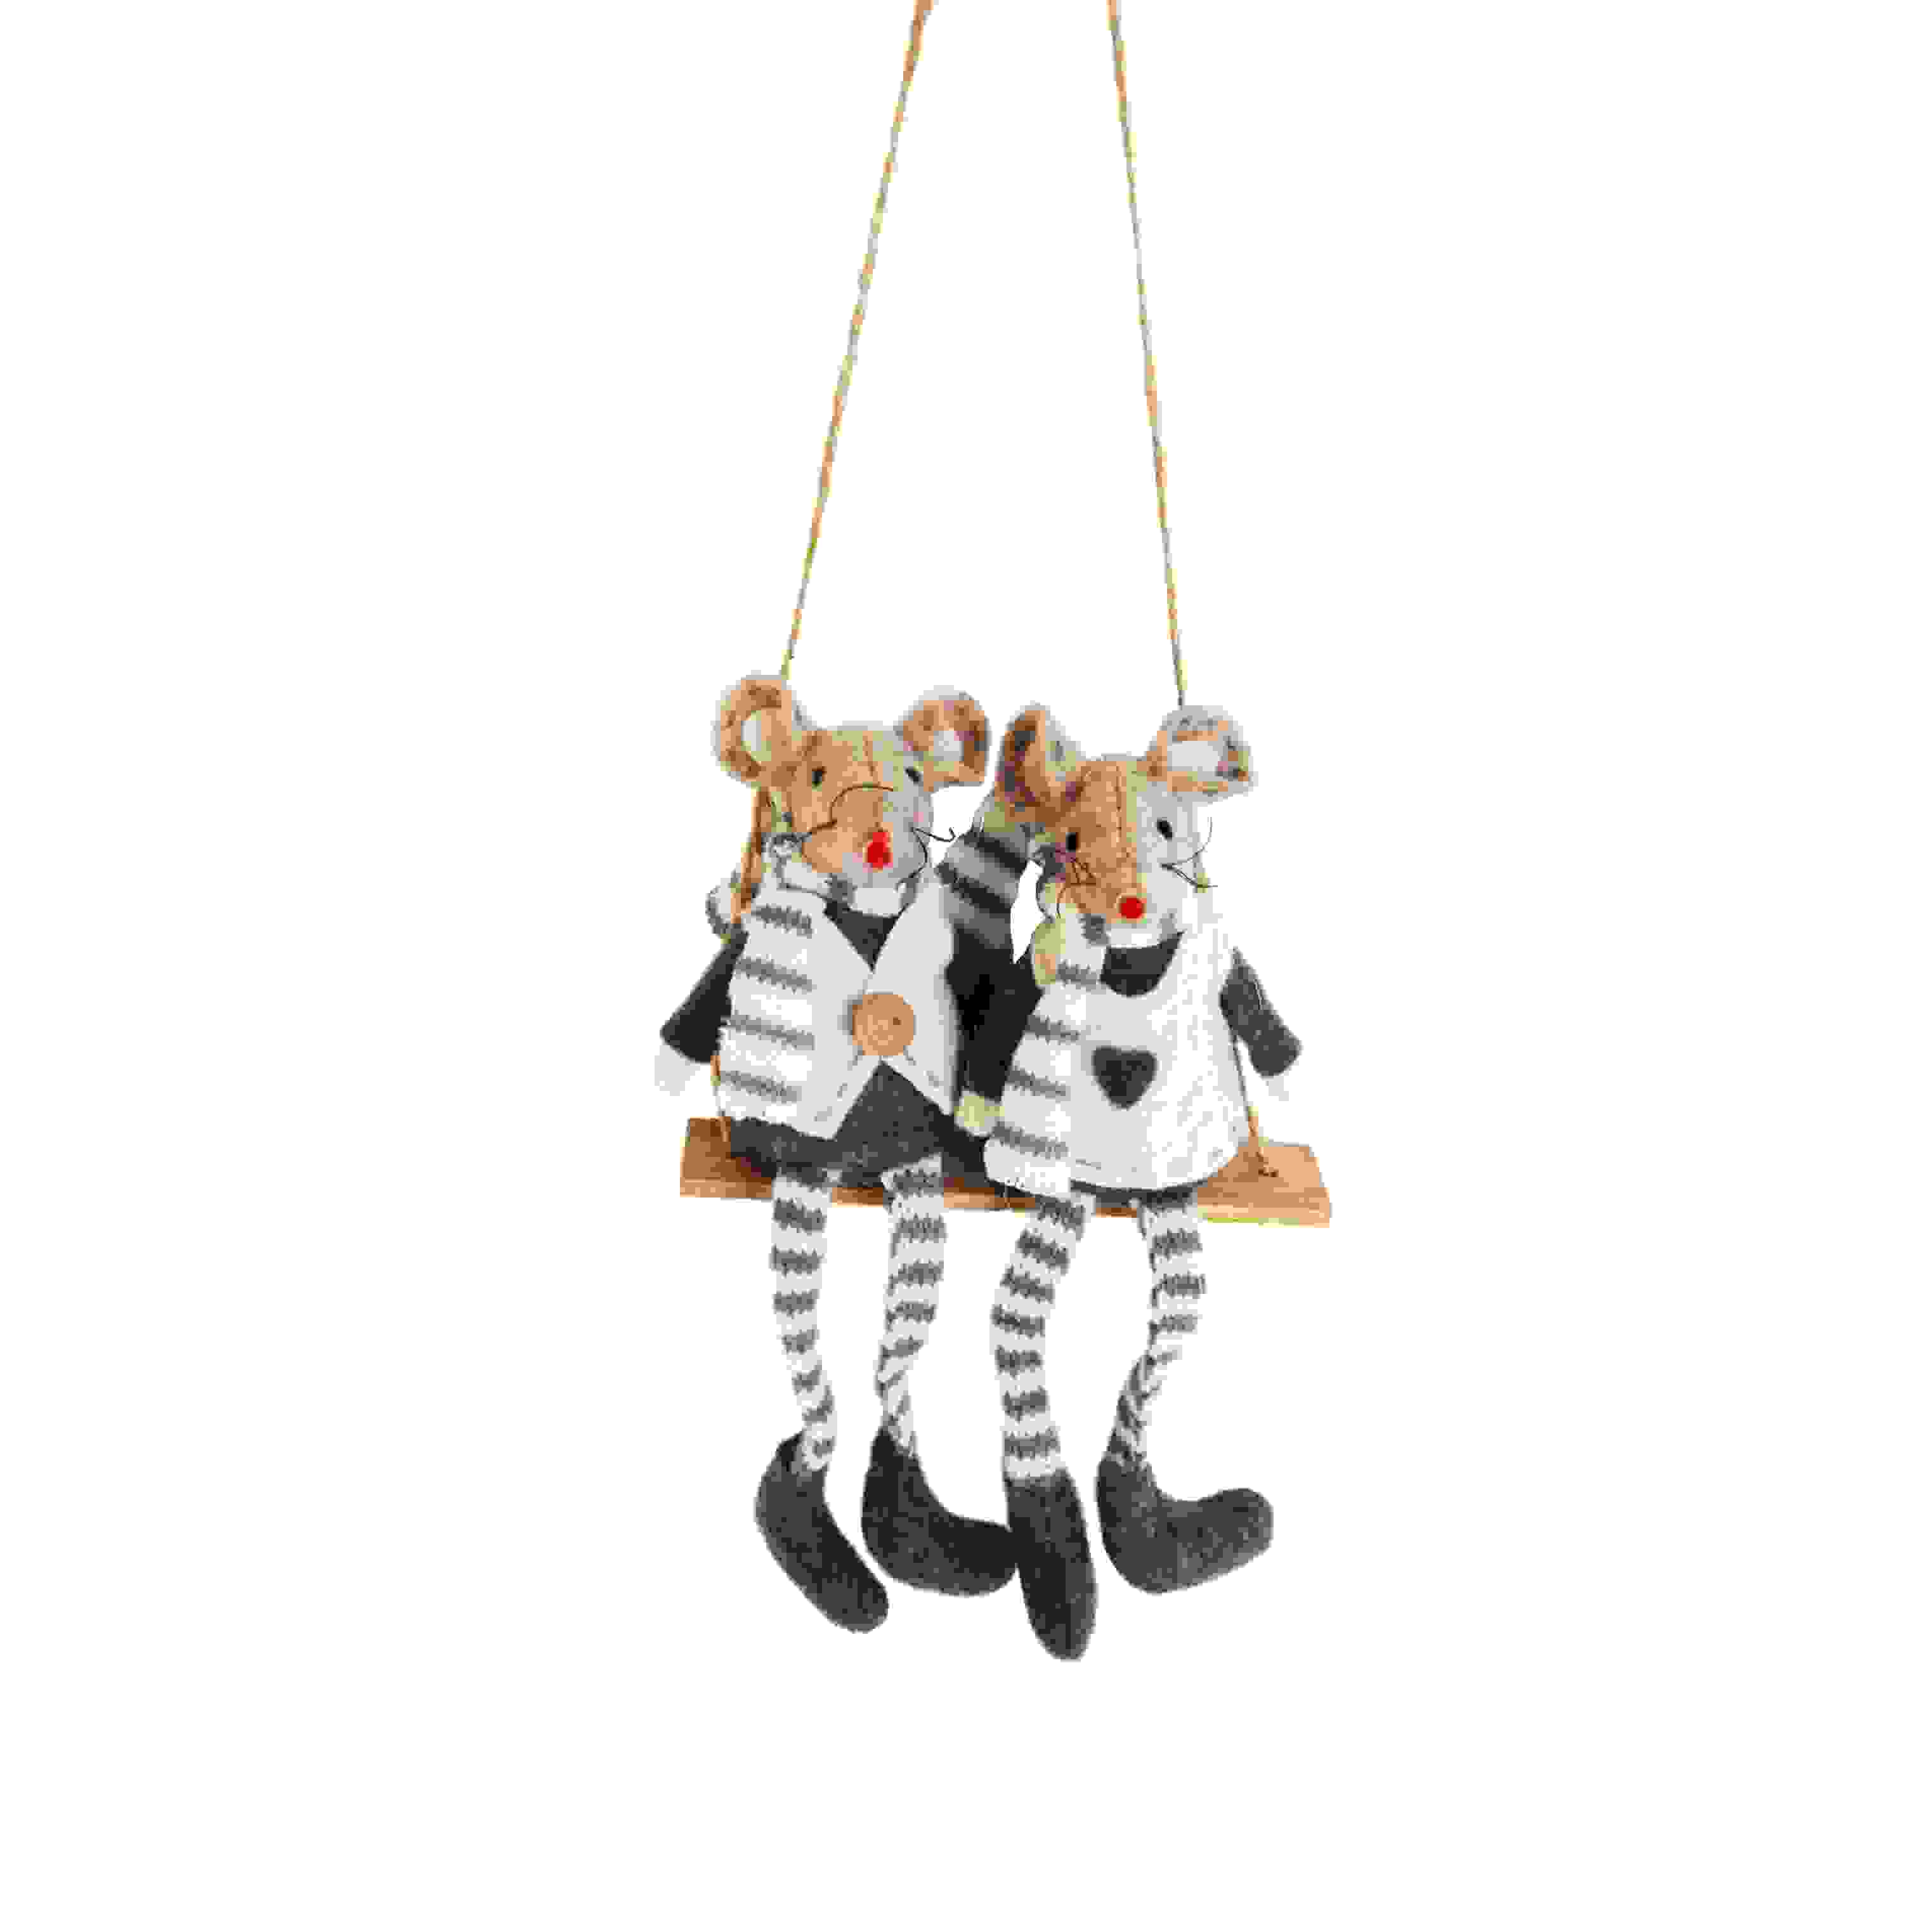 ASS. HANG GREY MICE ON SWING